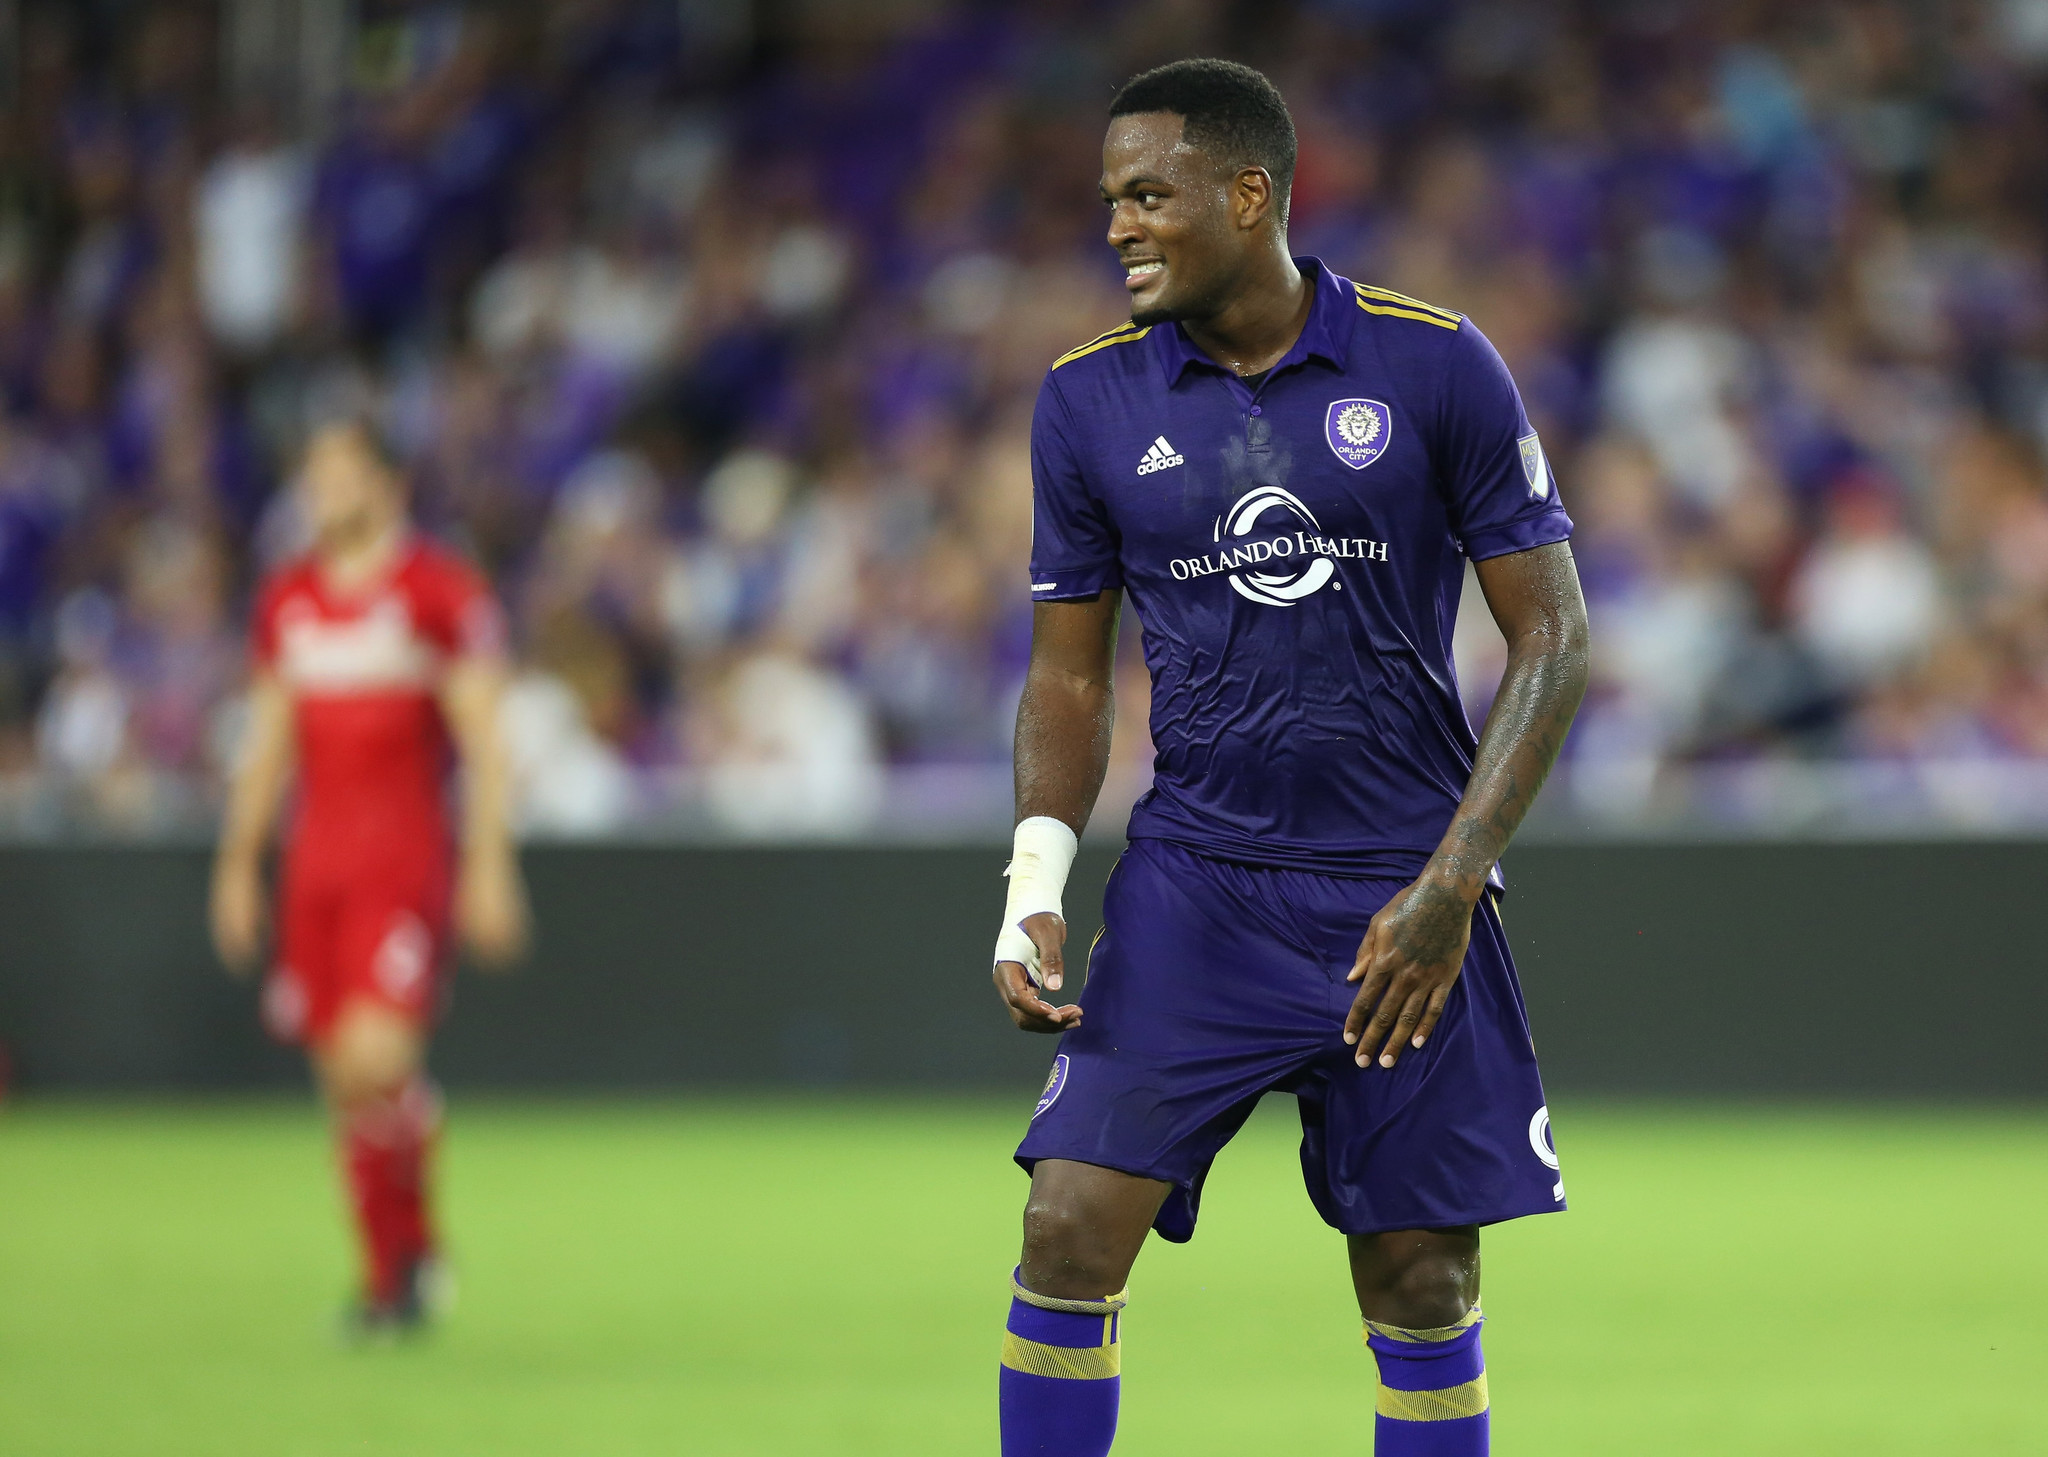 Os-sp-orlando-city-striker-cyle-larin-suspended-after-dui-20170627